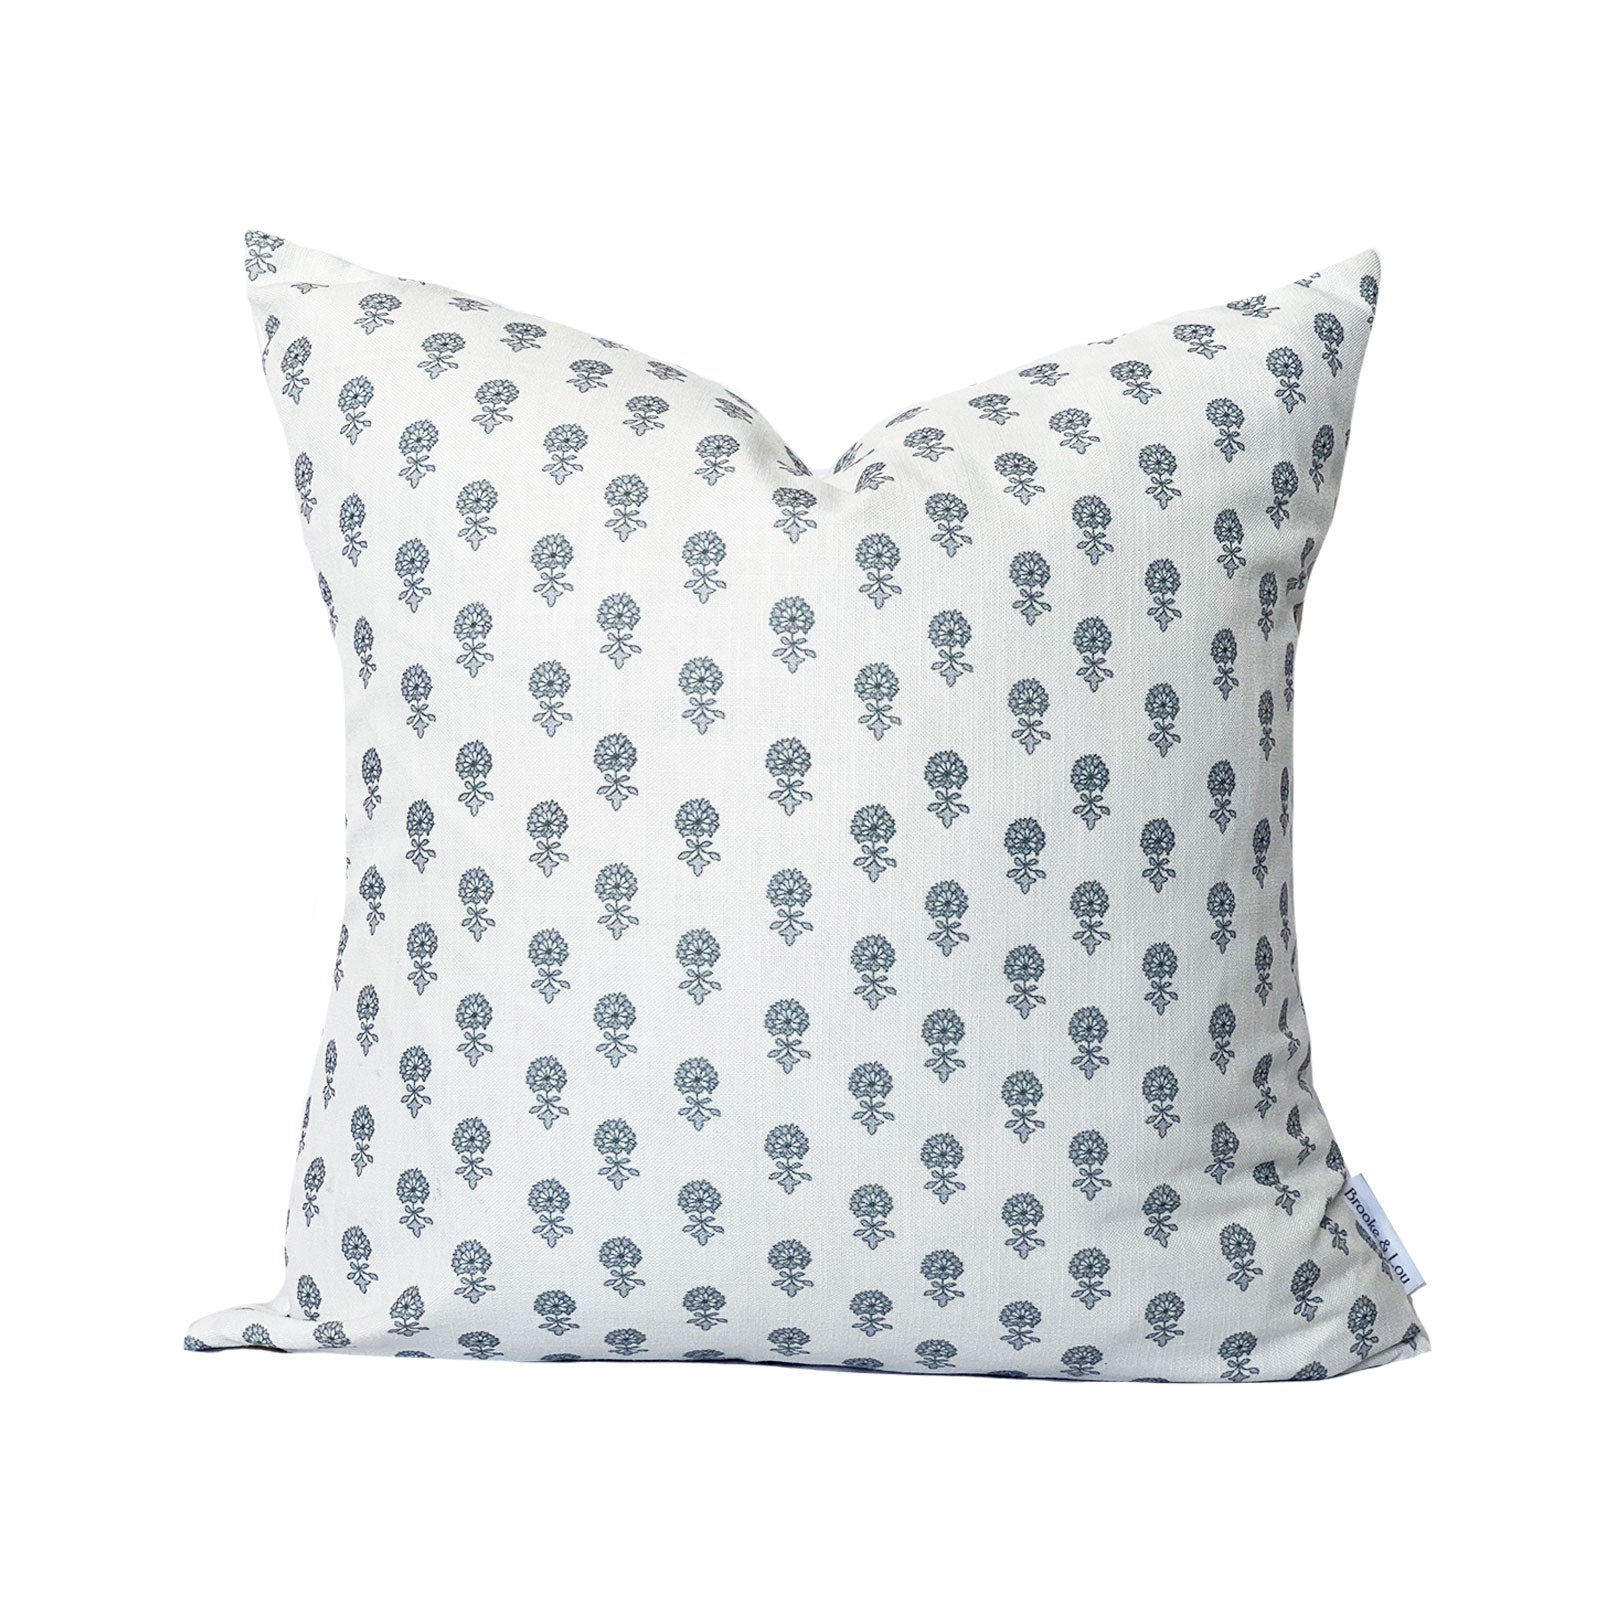 Lyla Pillow in Light Blue